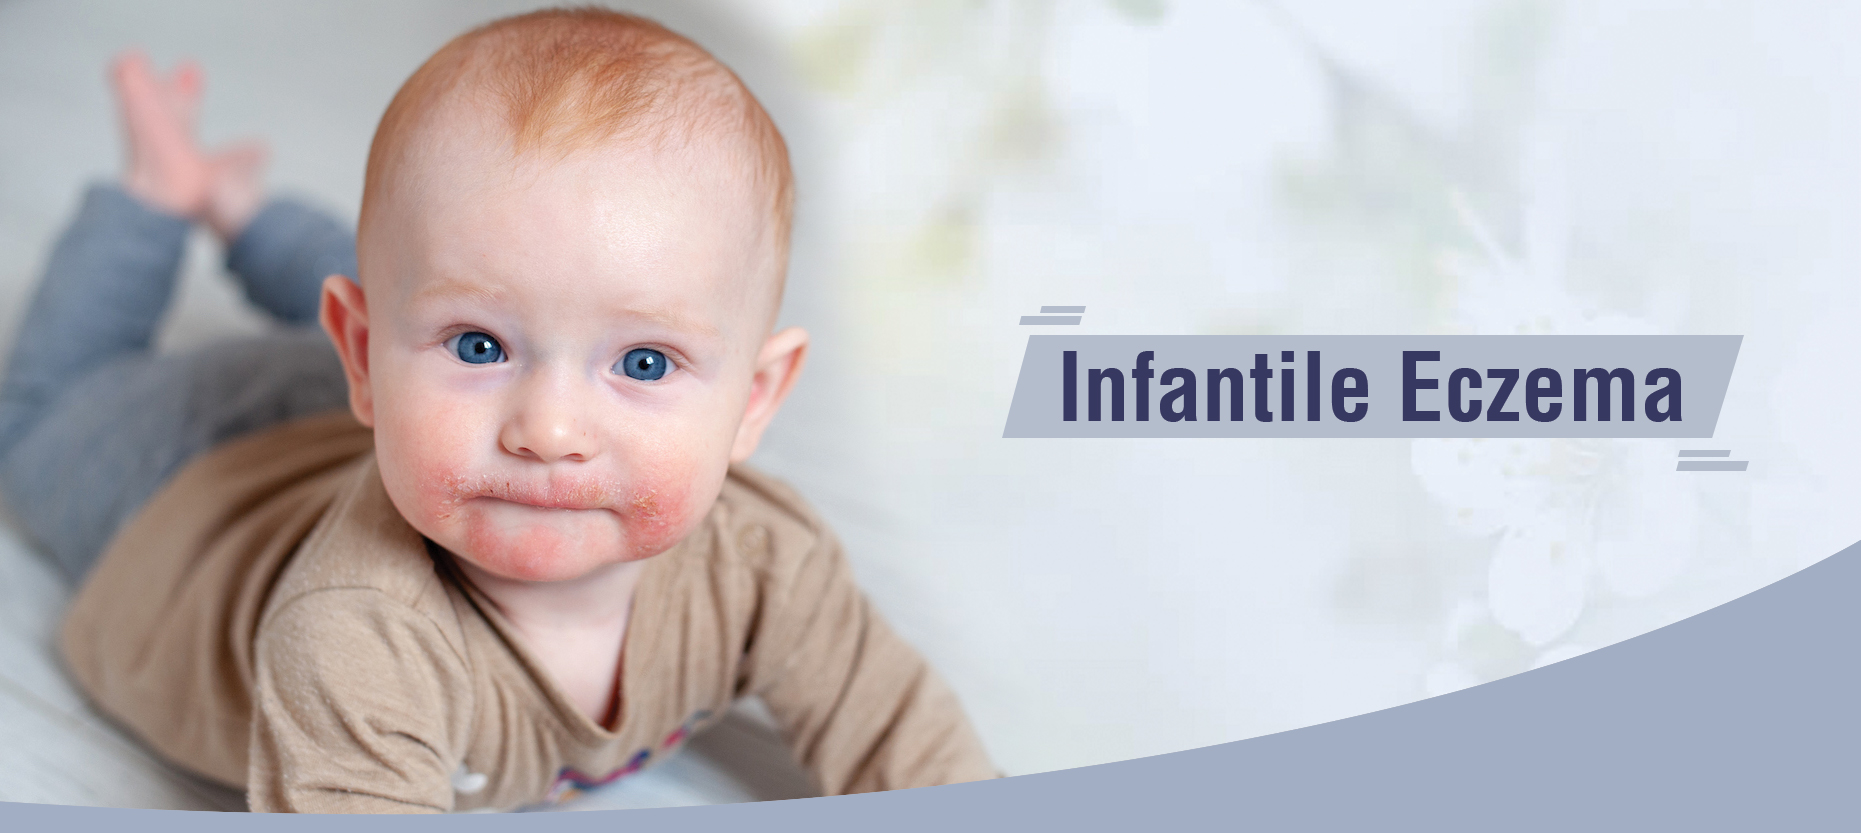 Infantile Eczema: Common Causes and its Treatment